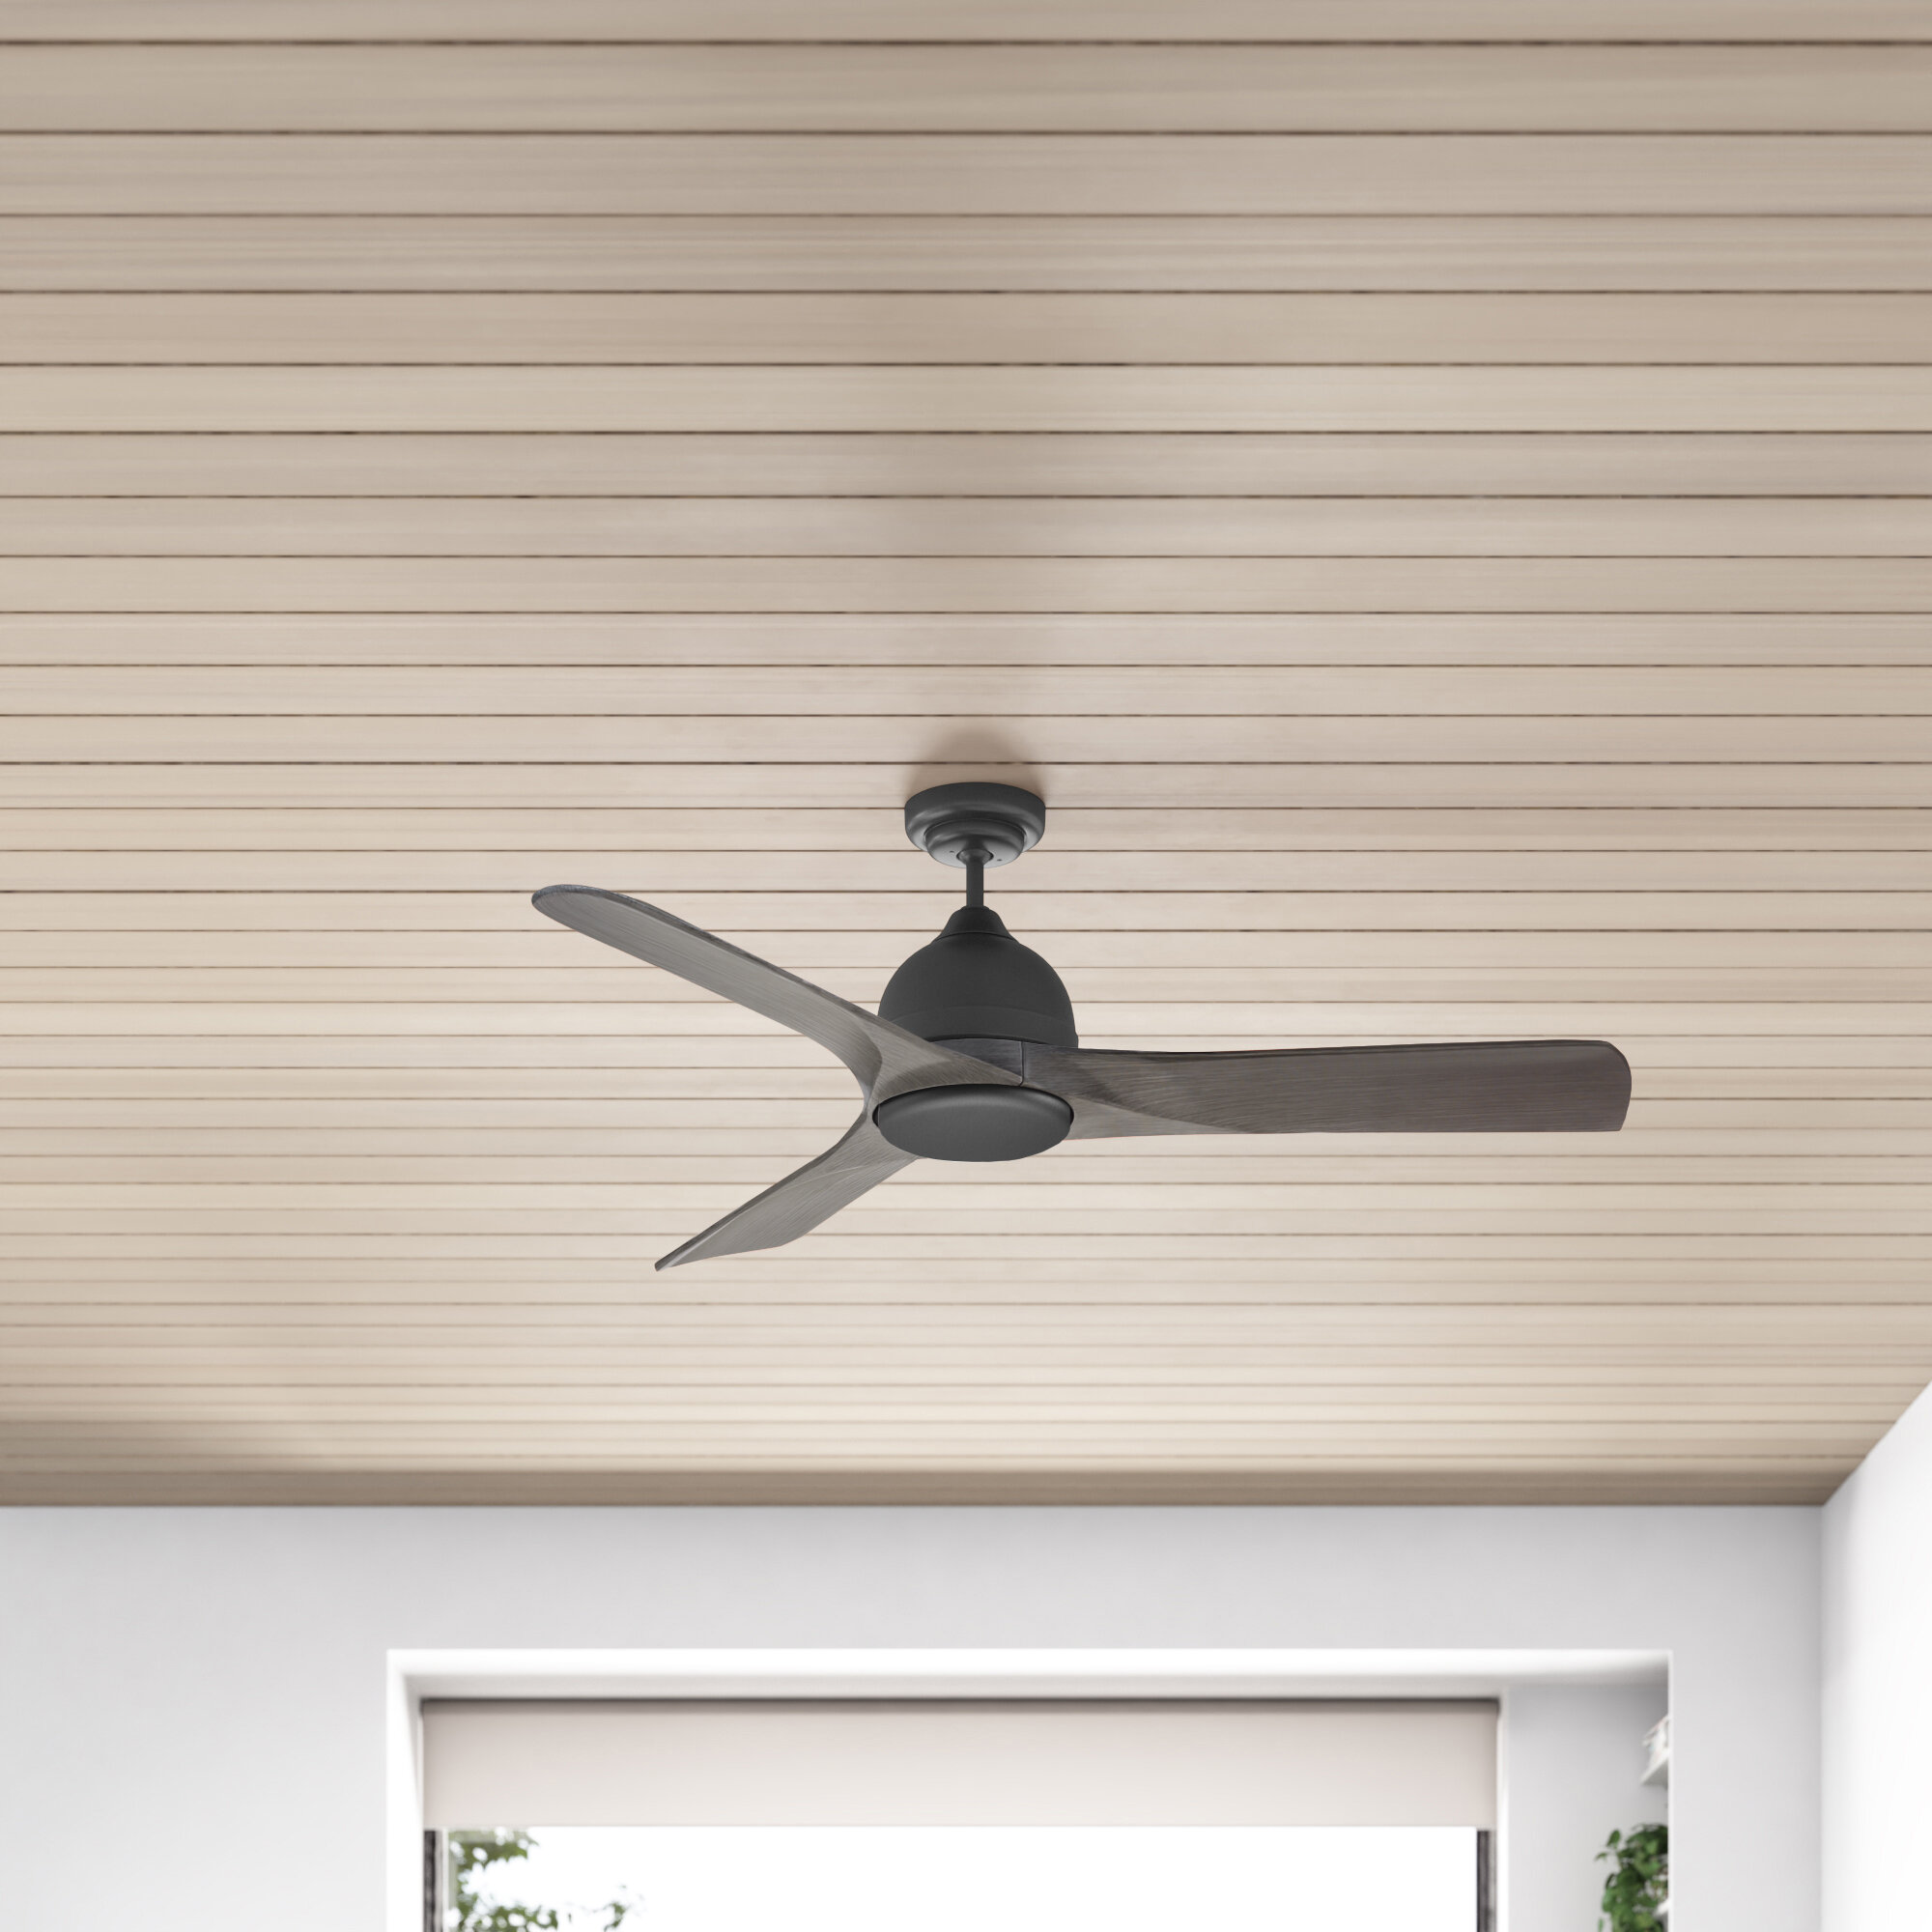 54 Zilla 3 Blade Outdoor Led Standard Ceiling Fan With Remote Control And Light Kit Included Reviews Allmodern